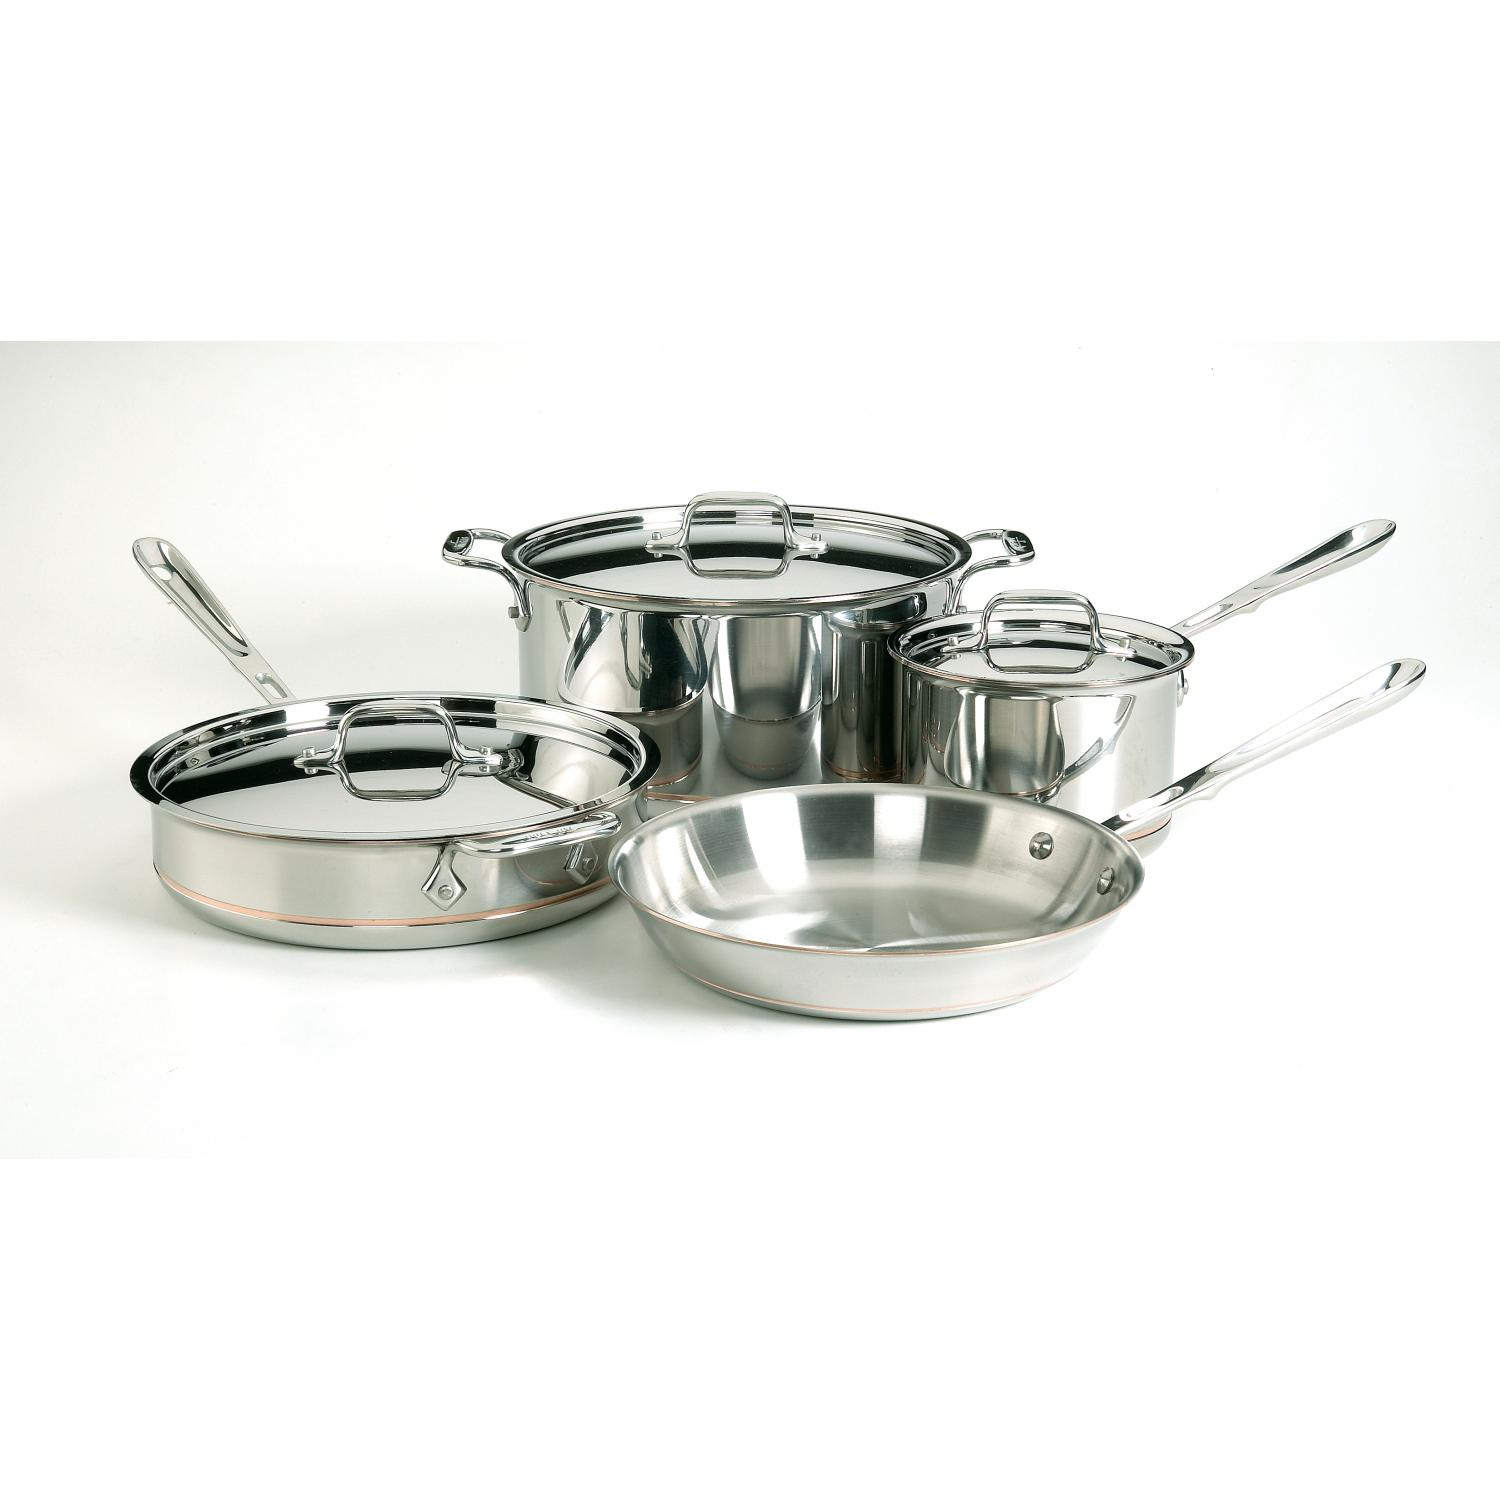 All-Clad Copper-Core 7-Piece Cookware Set